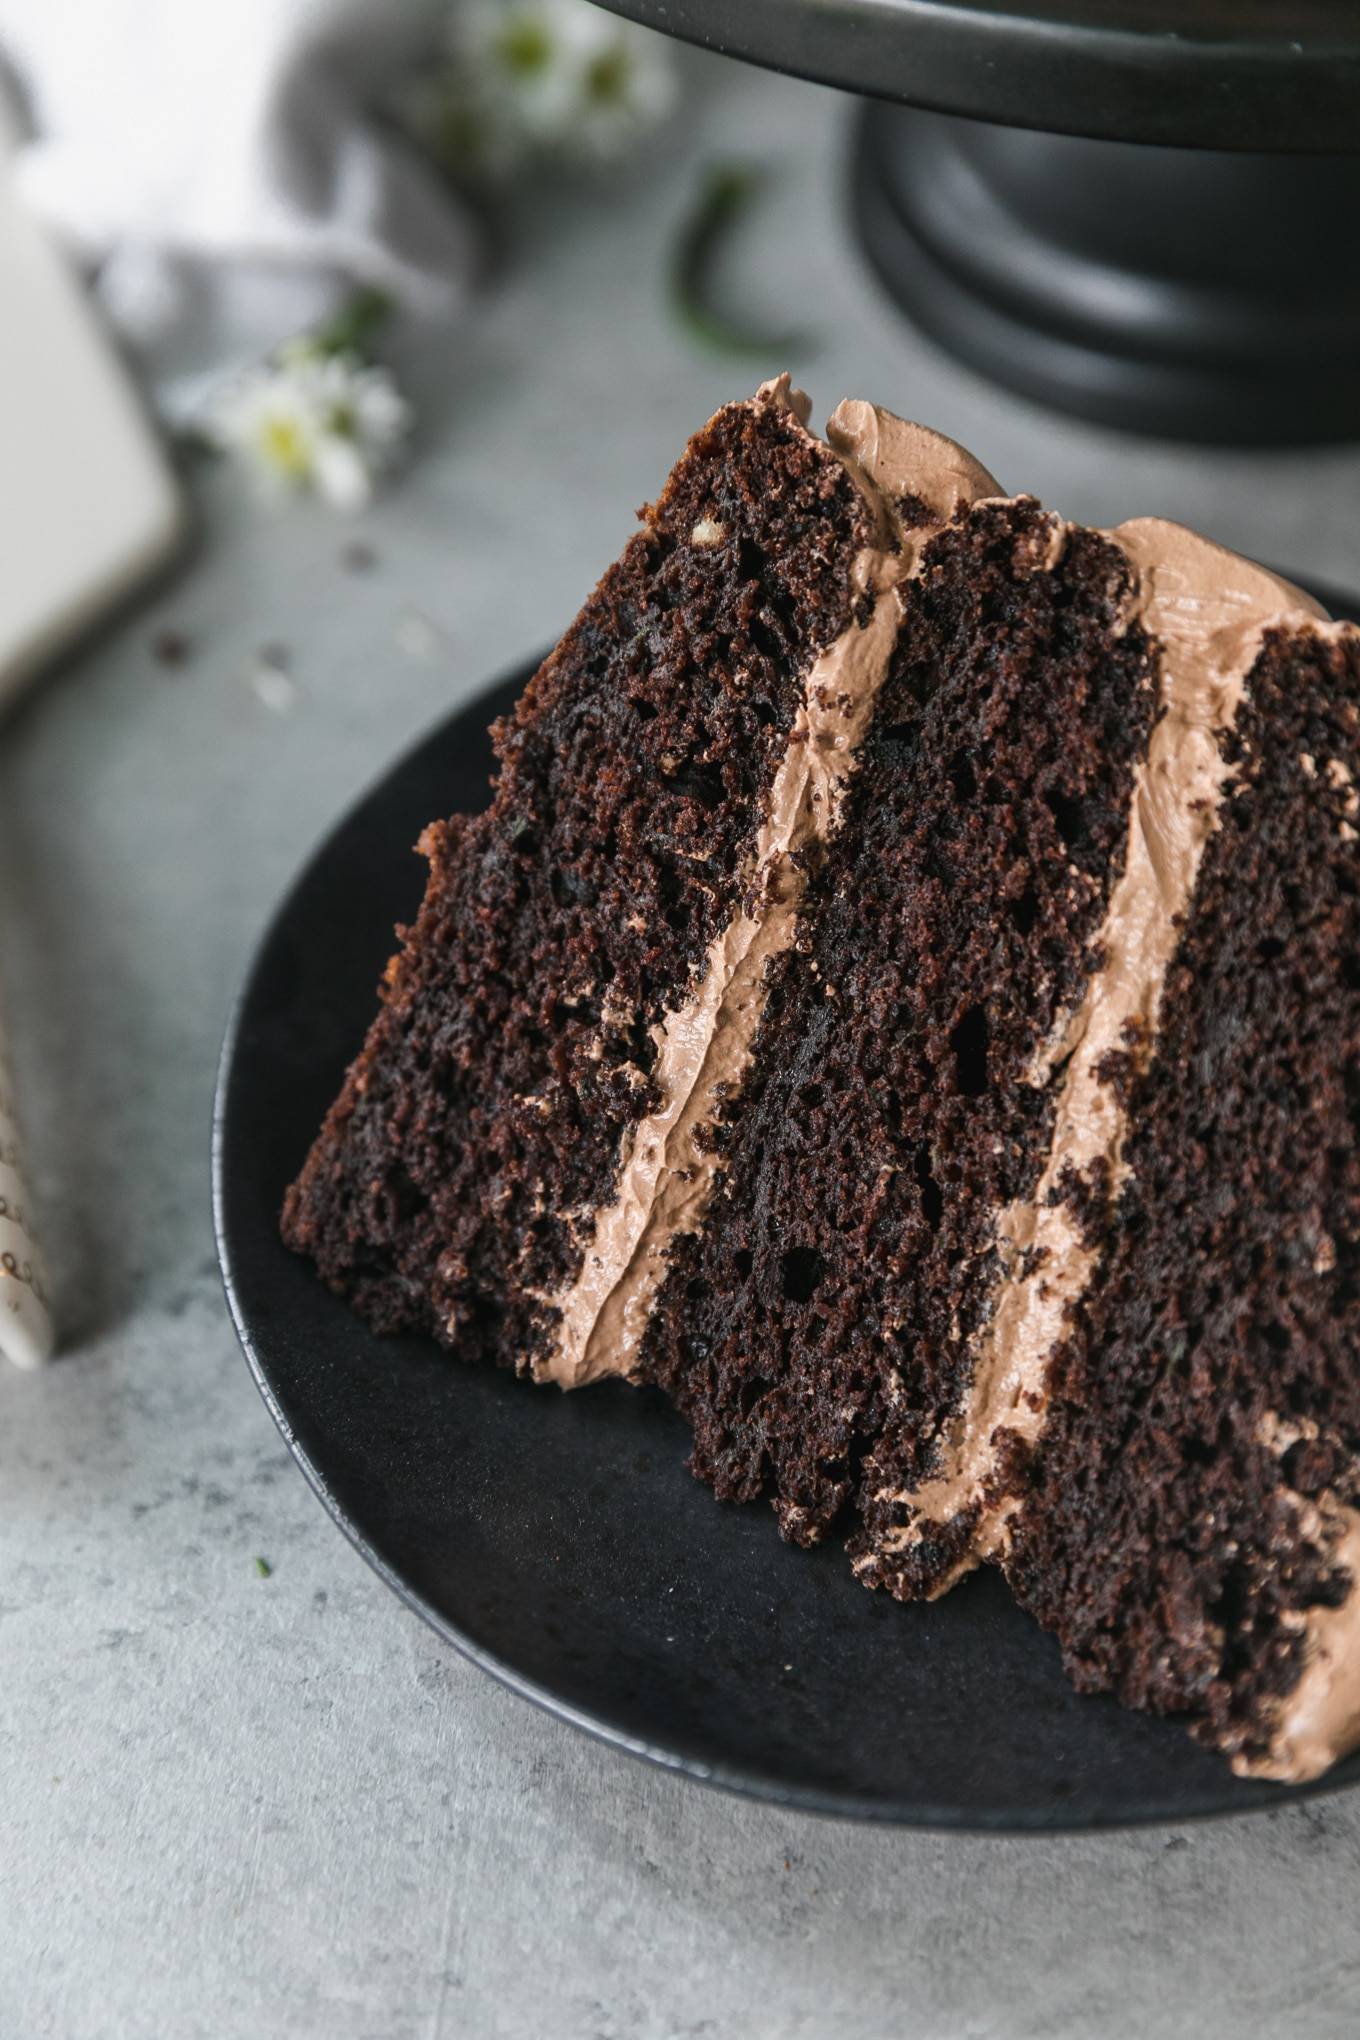 Close up shot of a piece of chocolate cake with light chocolate frosting